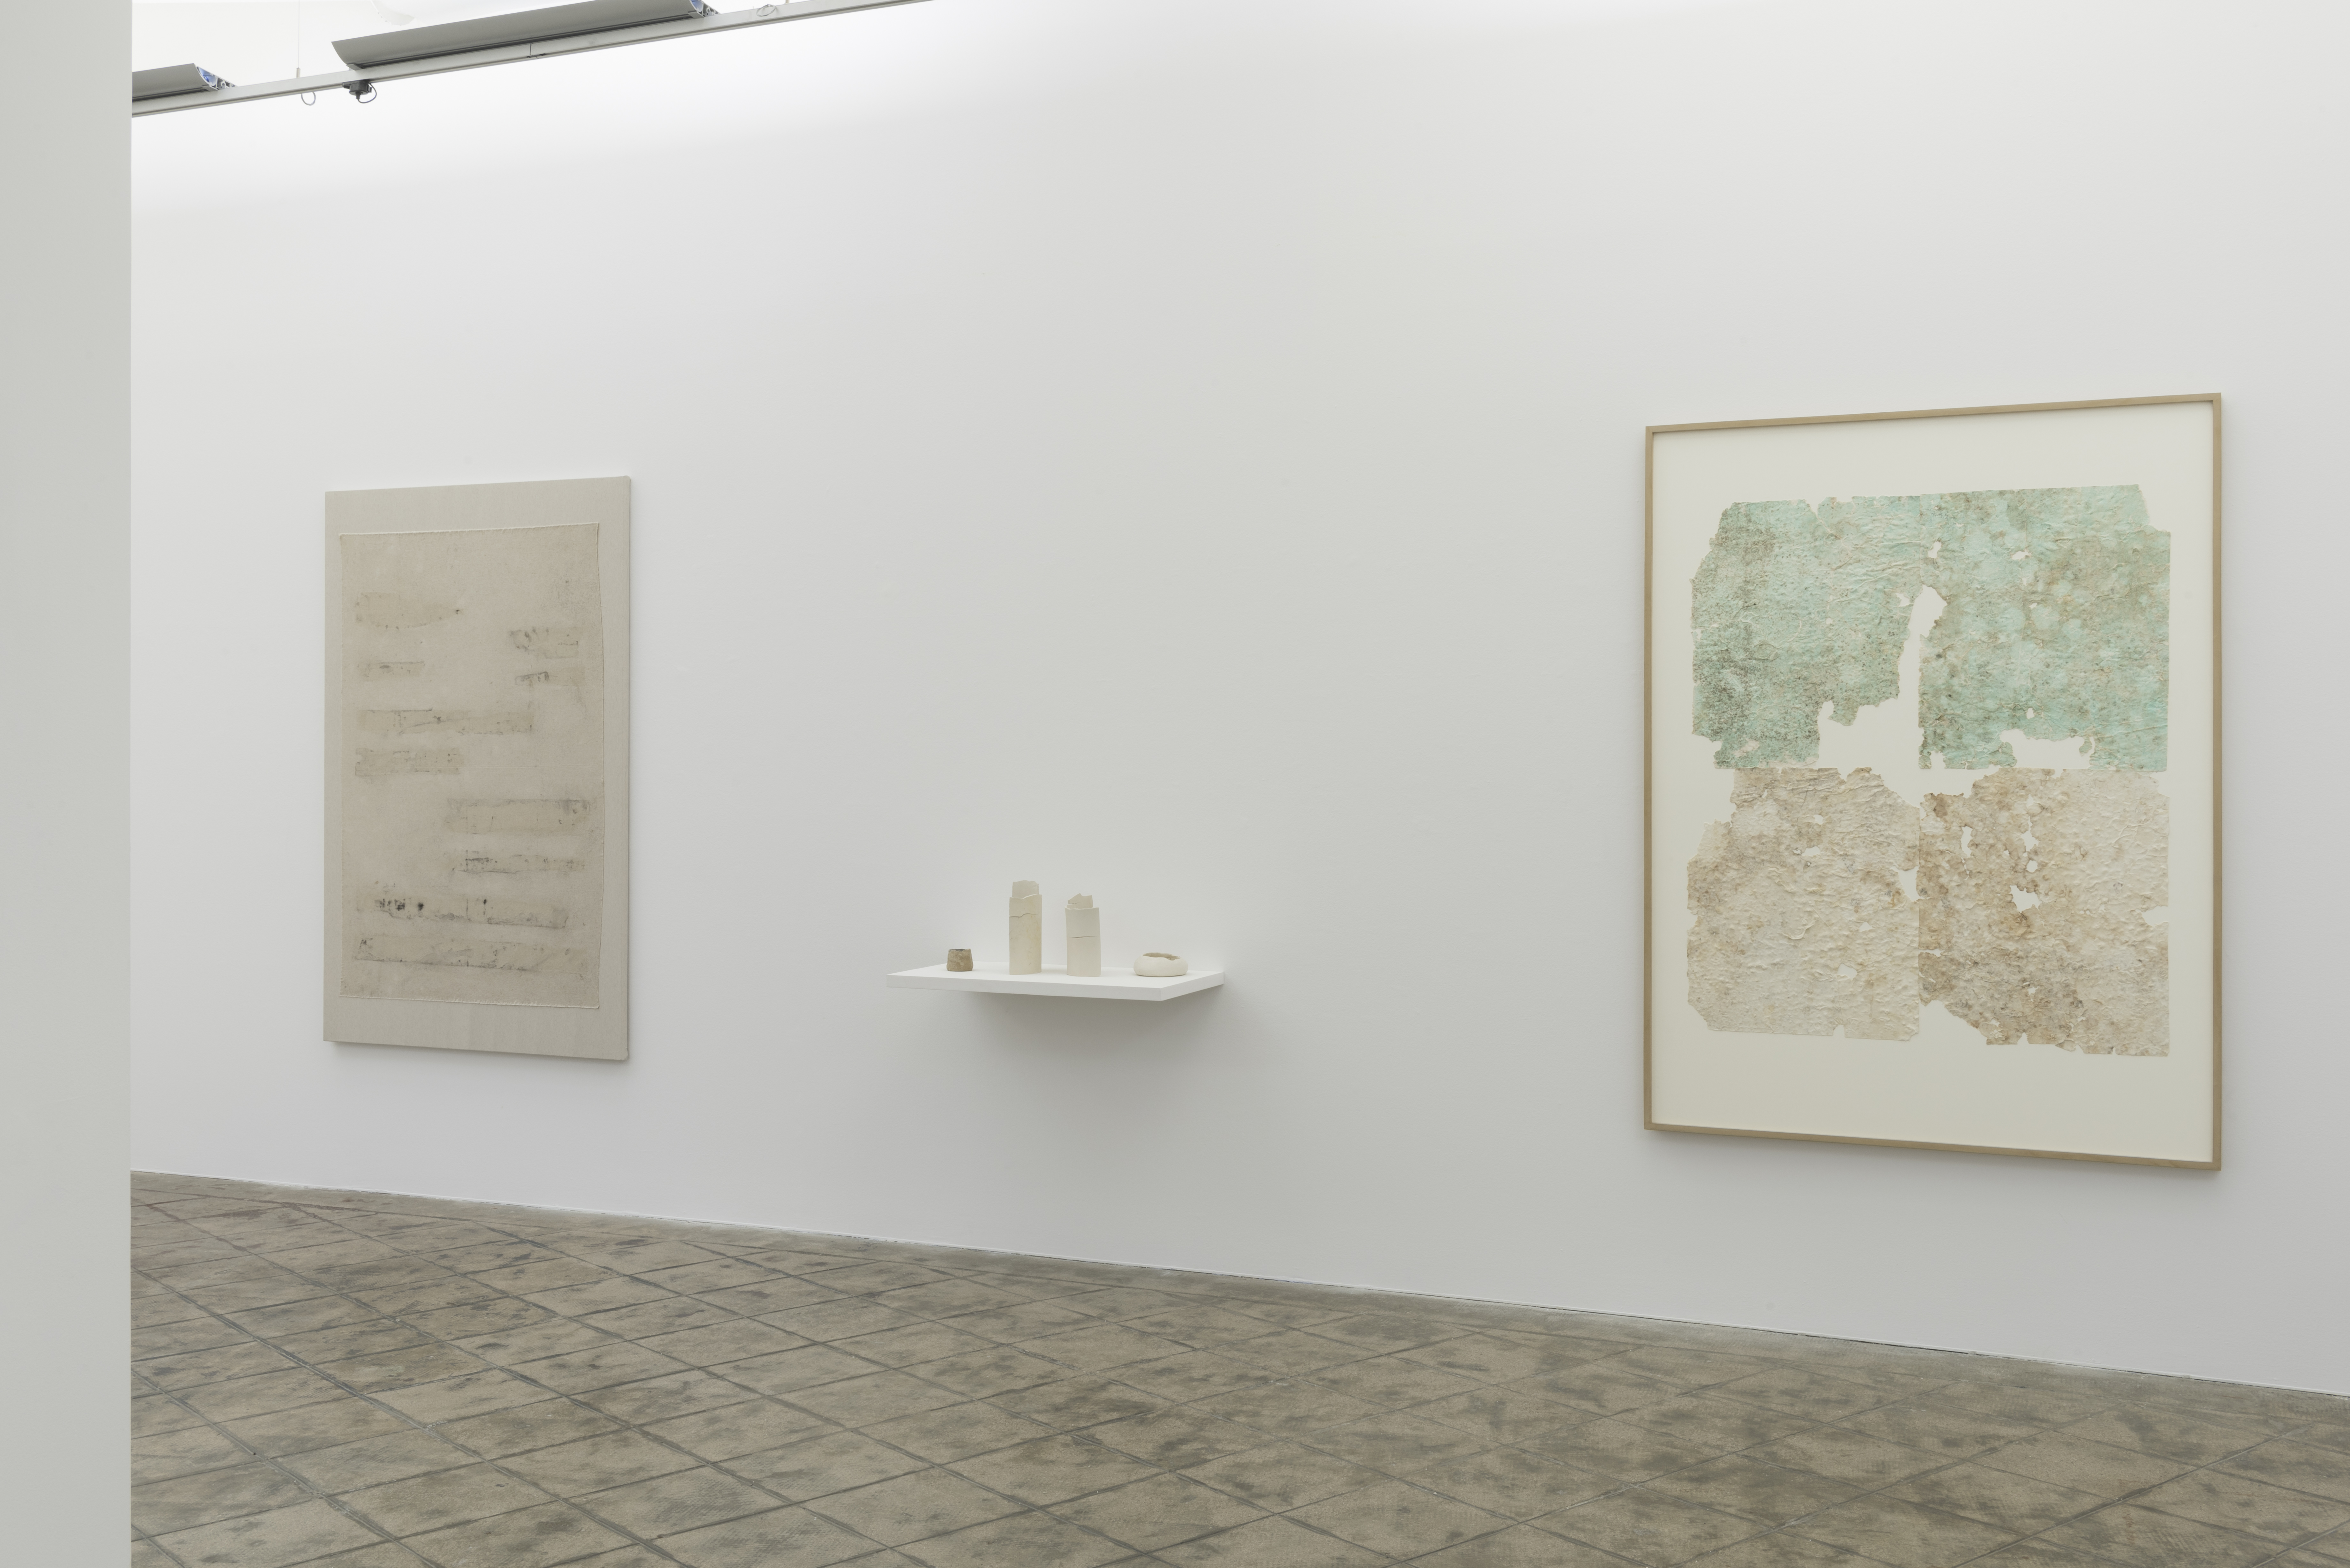 Installation view: Formes Absents, ProjecteSD | Formes Absents | ProjecteSD